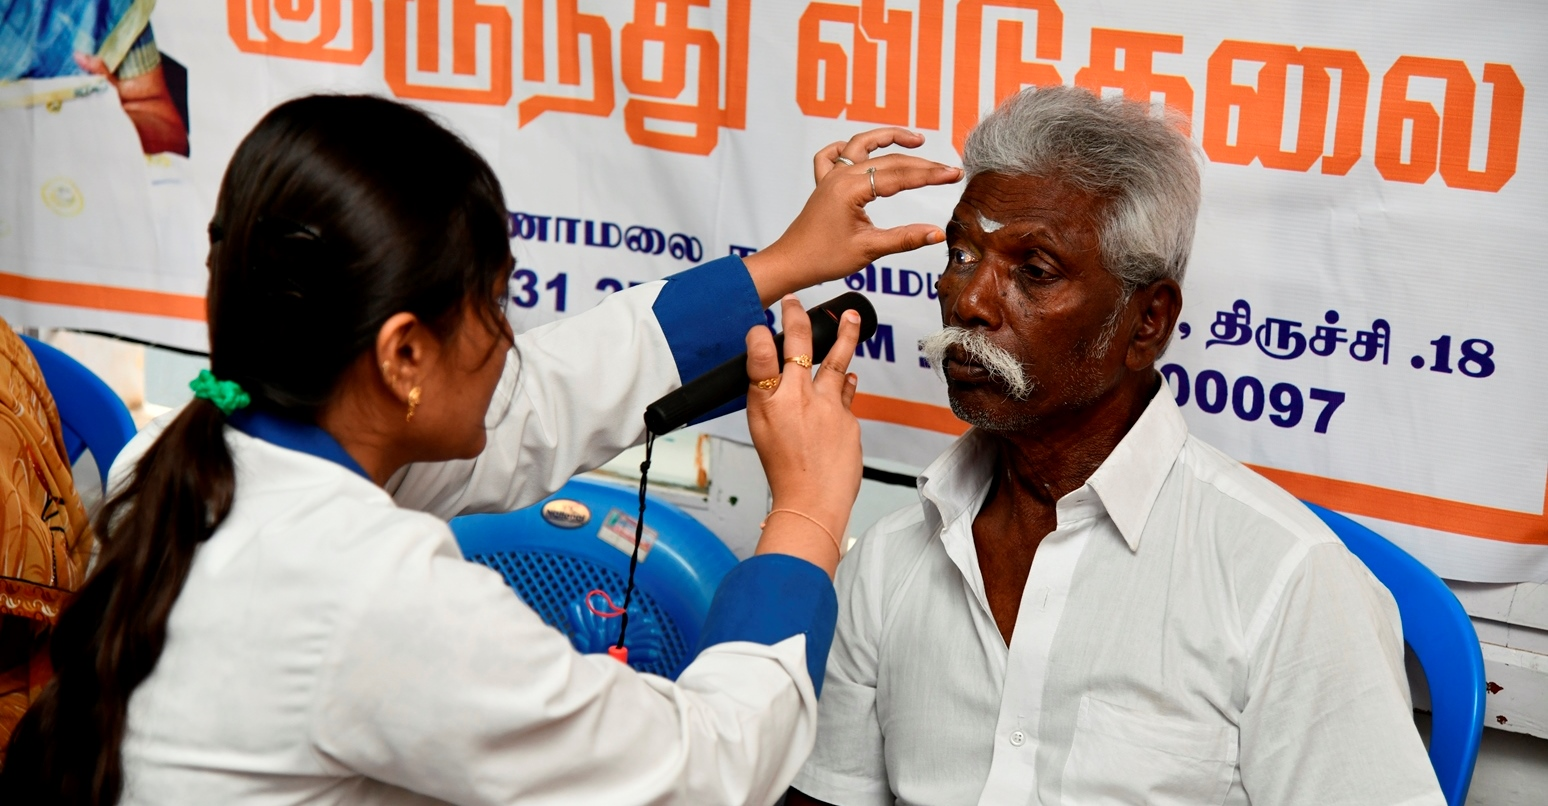 Eye Camp as part of CSR activities